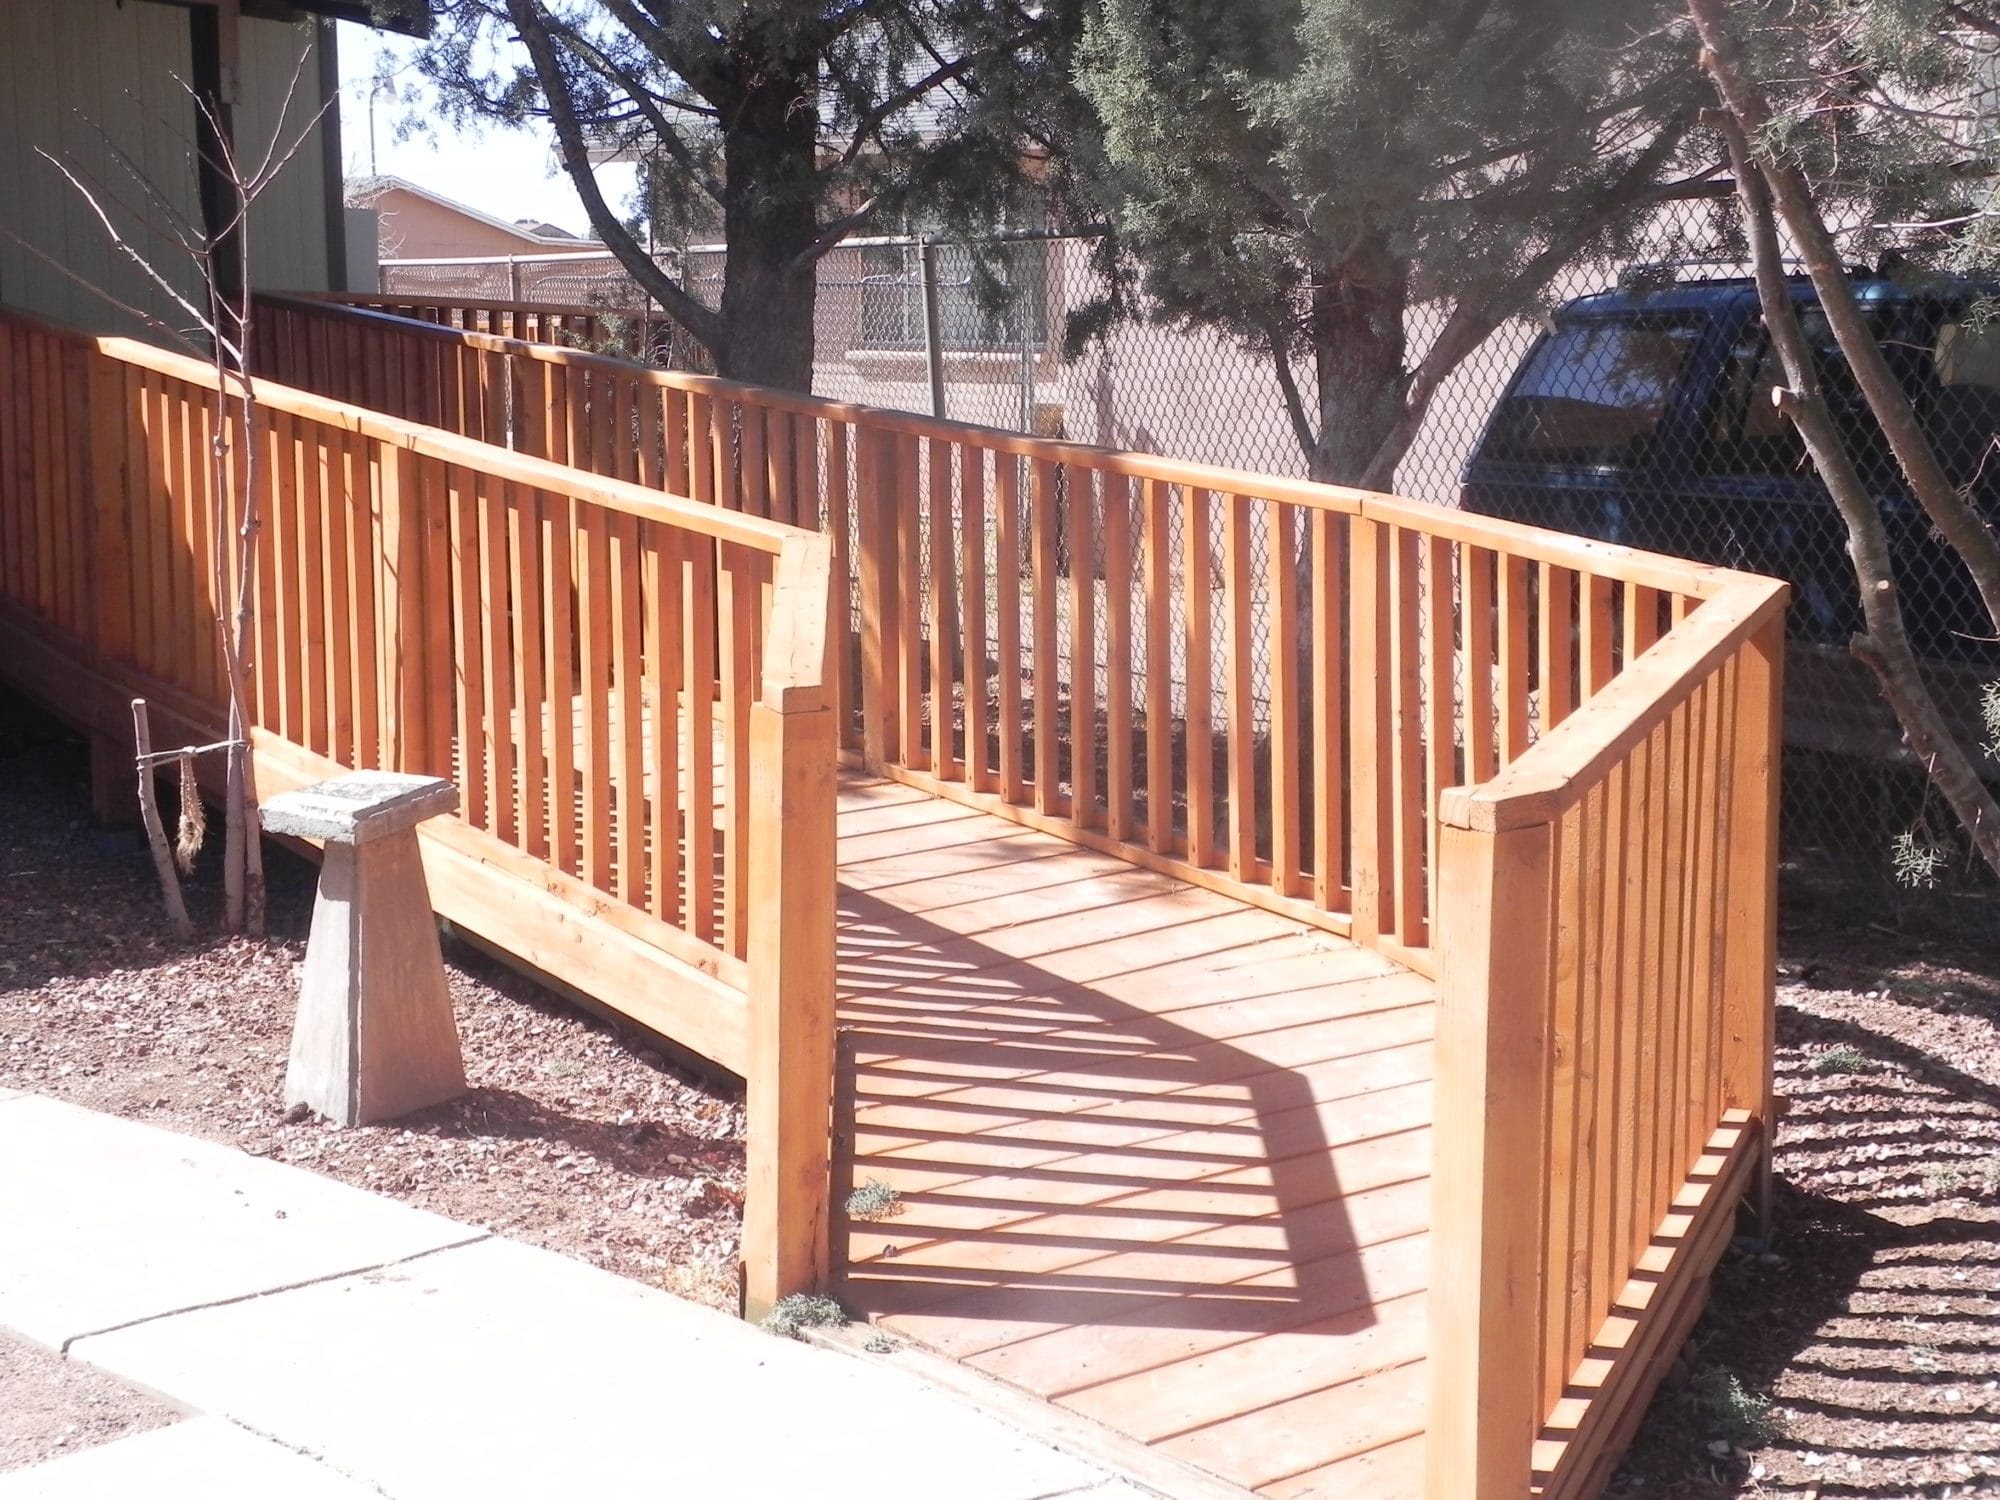 Sierra Remodeling - beautiful redwood wheelchair ramp with safety handrails and gentle turn